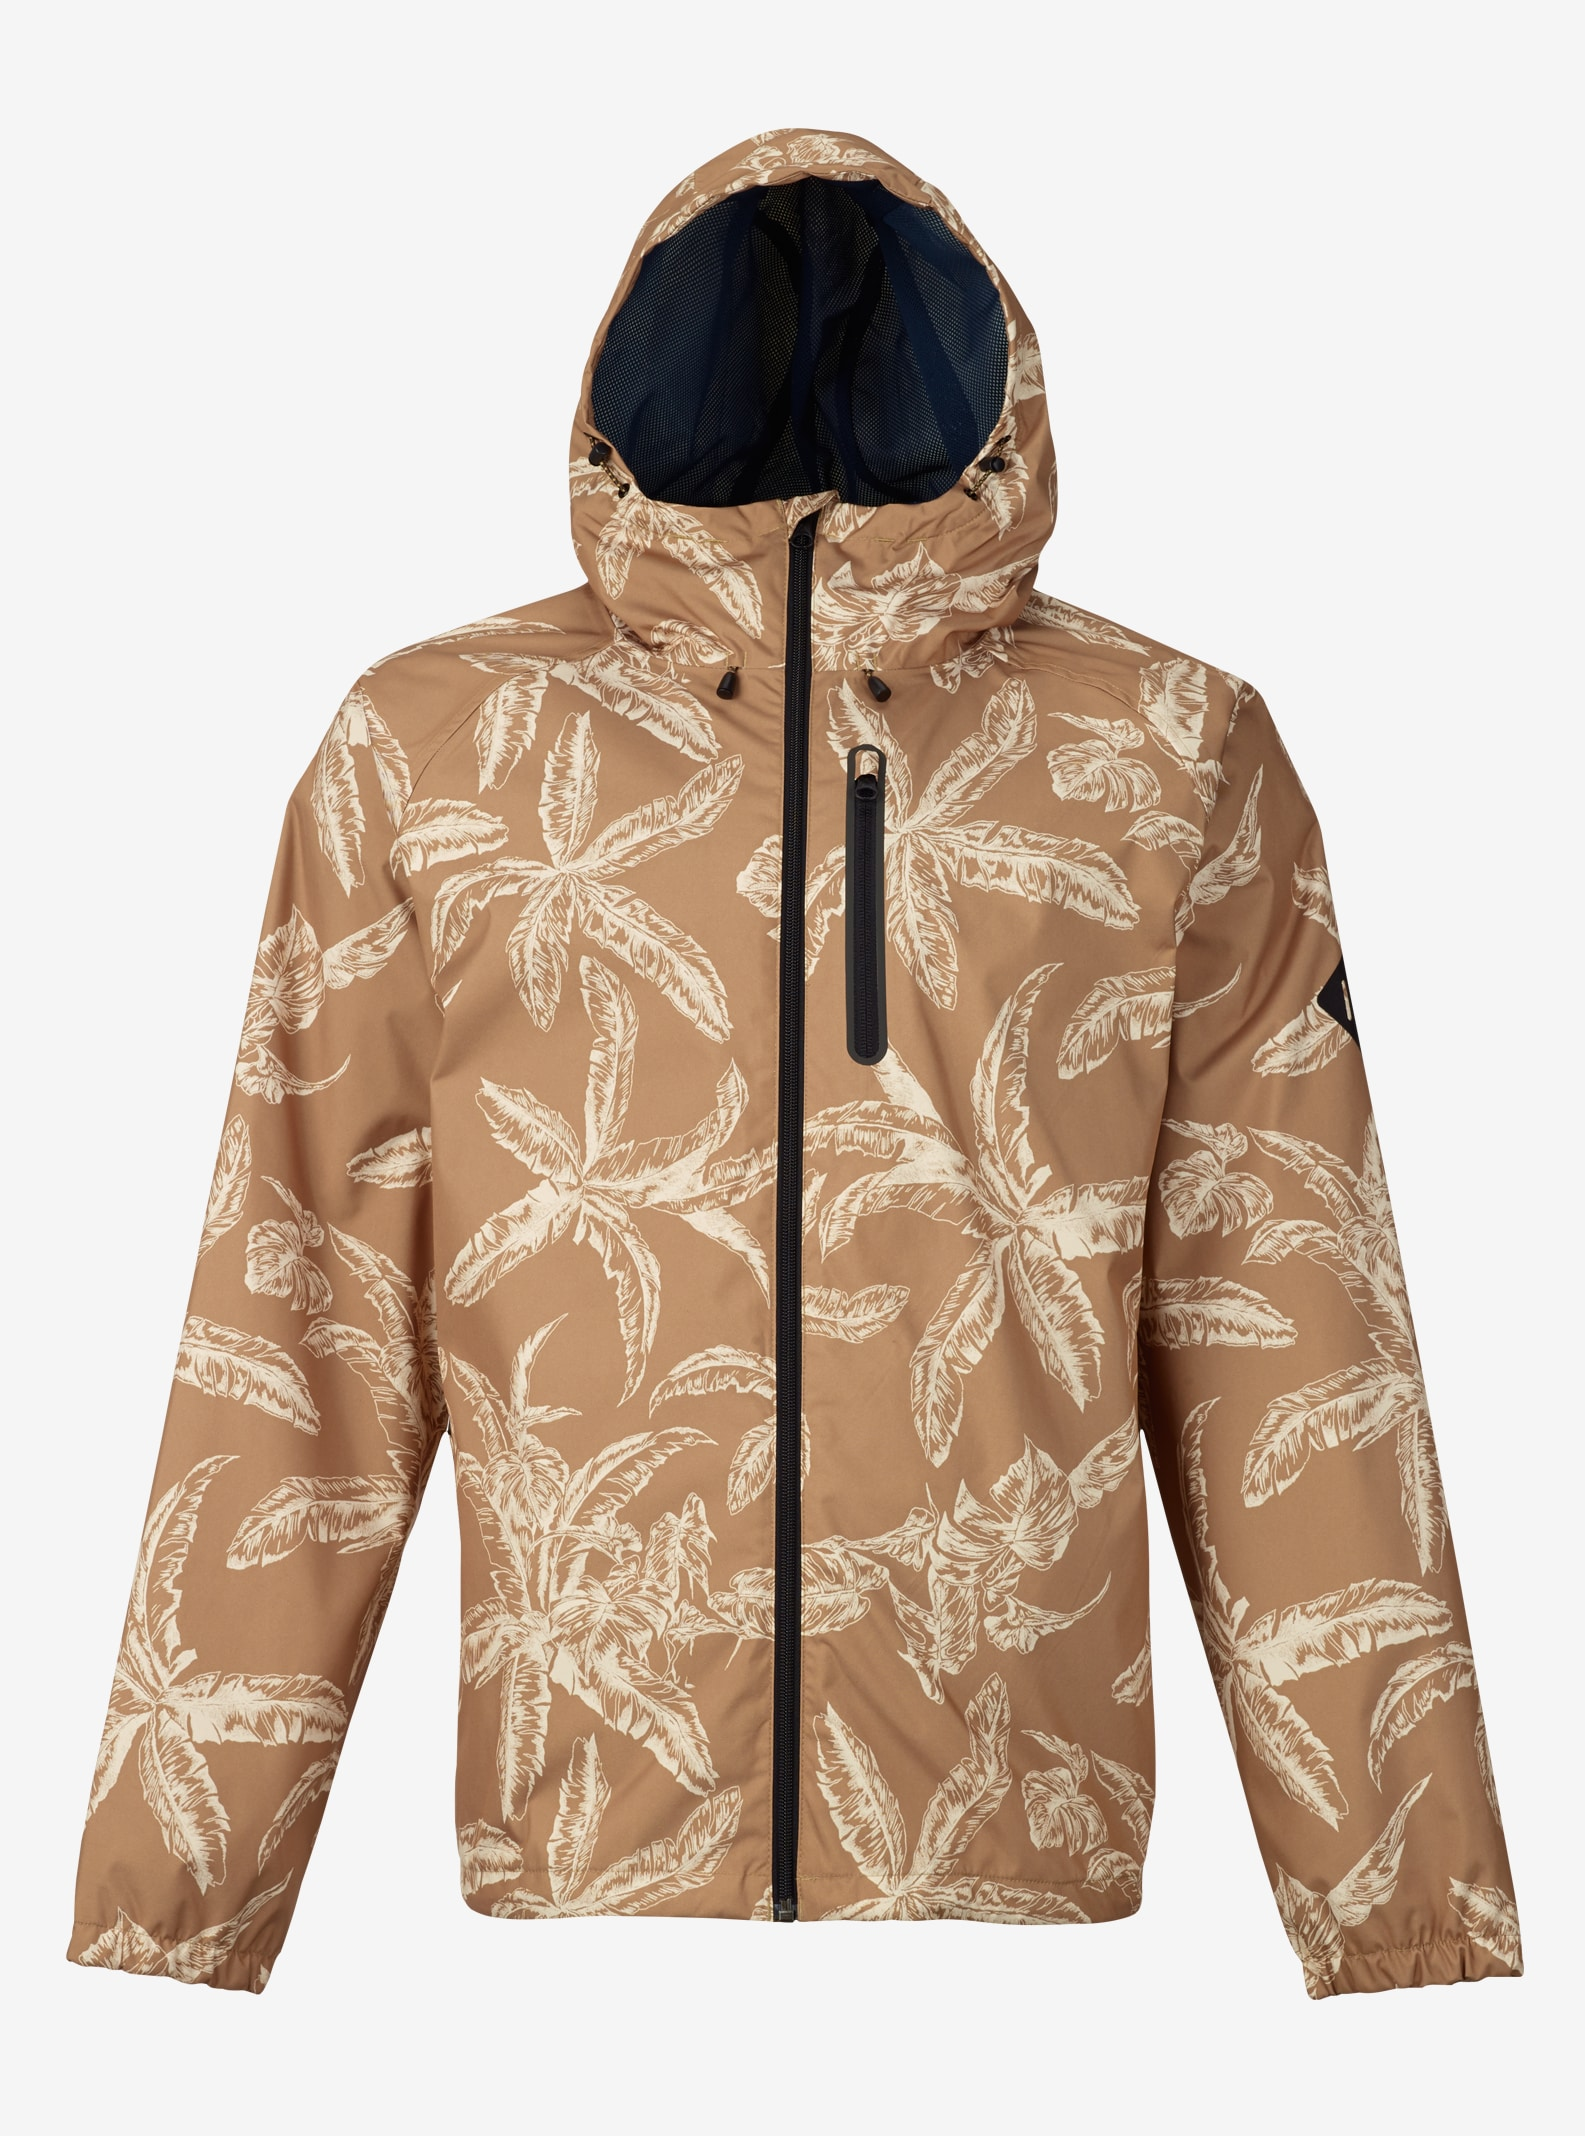 Burton Portal Jacket shown in Kelp Tropical